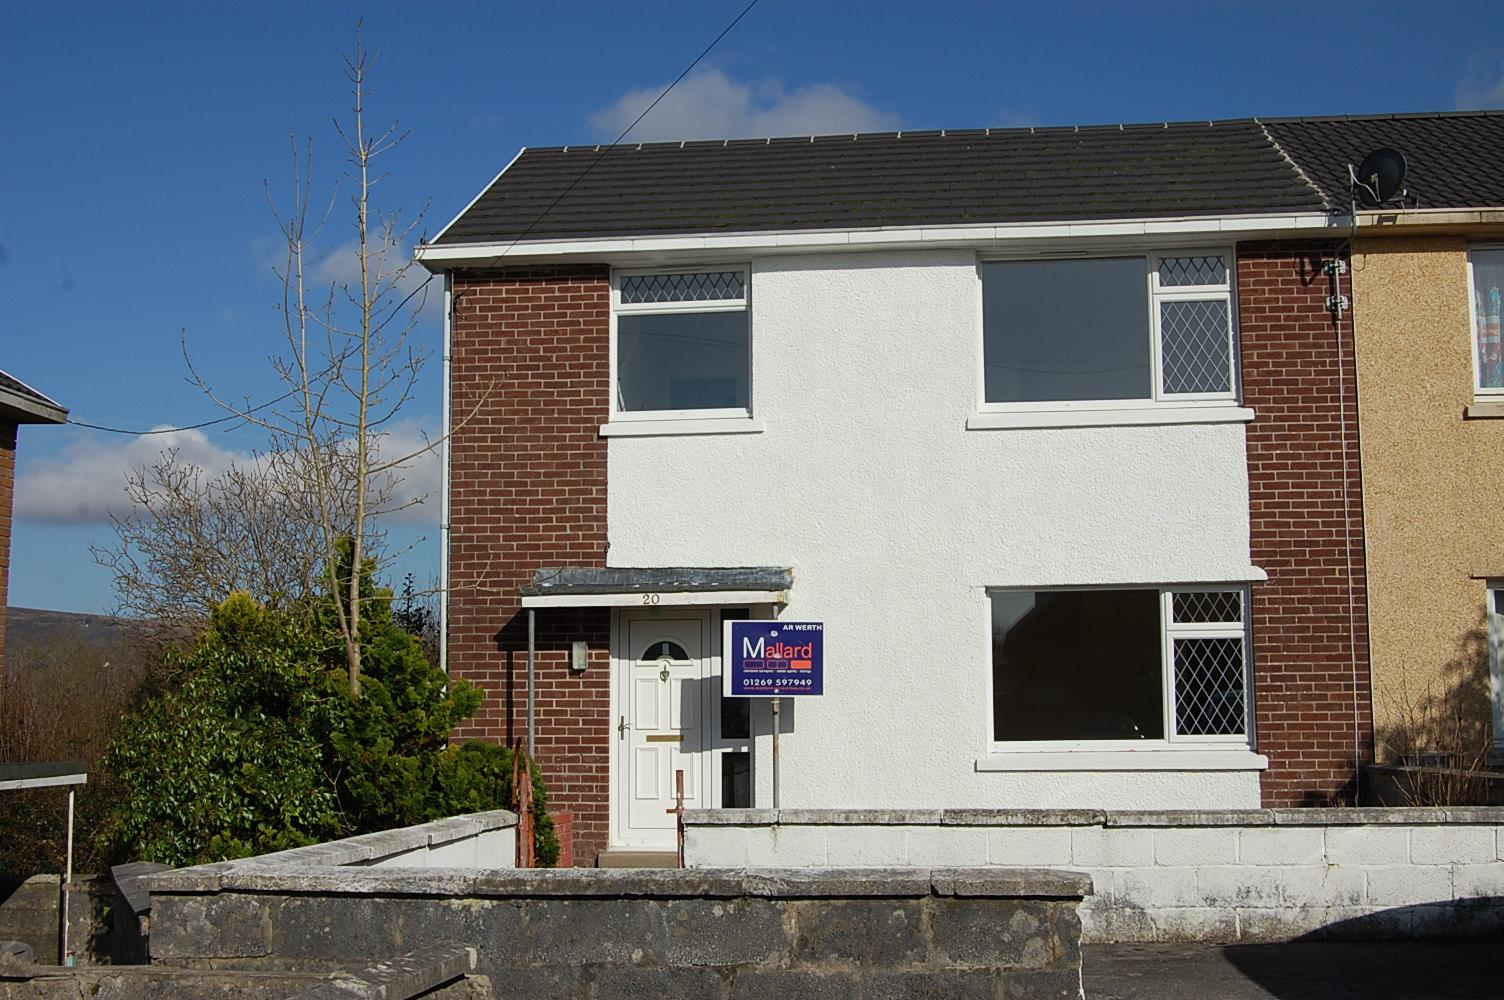 20 Jones Terrace, Glanamman, Ammanford, Carmarthenshire